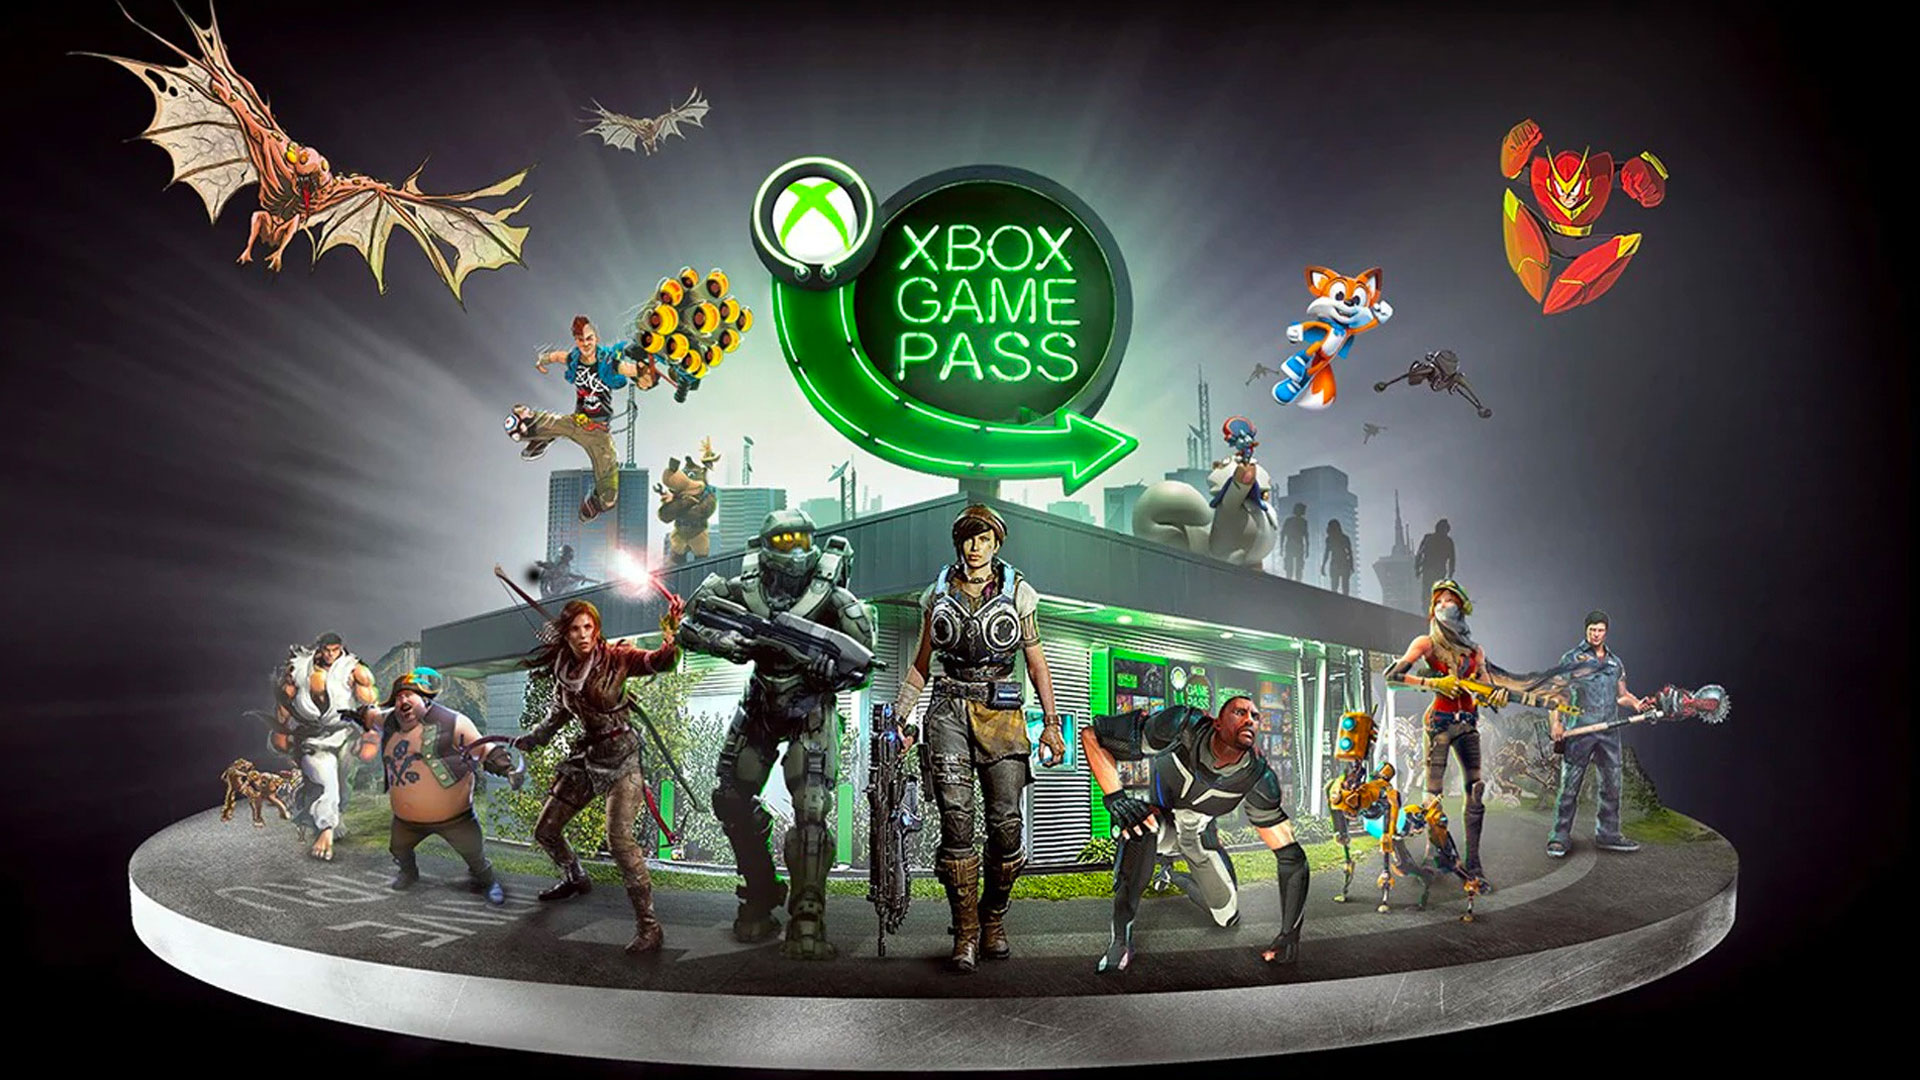 Best games on Xbox Game Pass to play right now | GamesRadar+